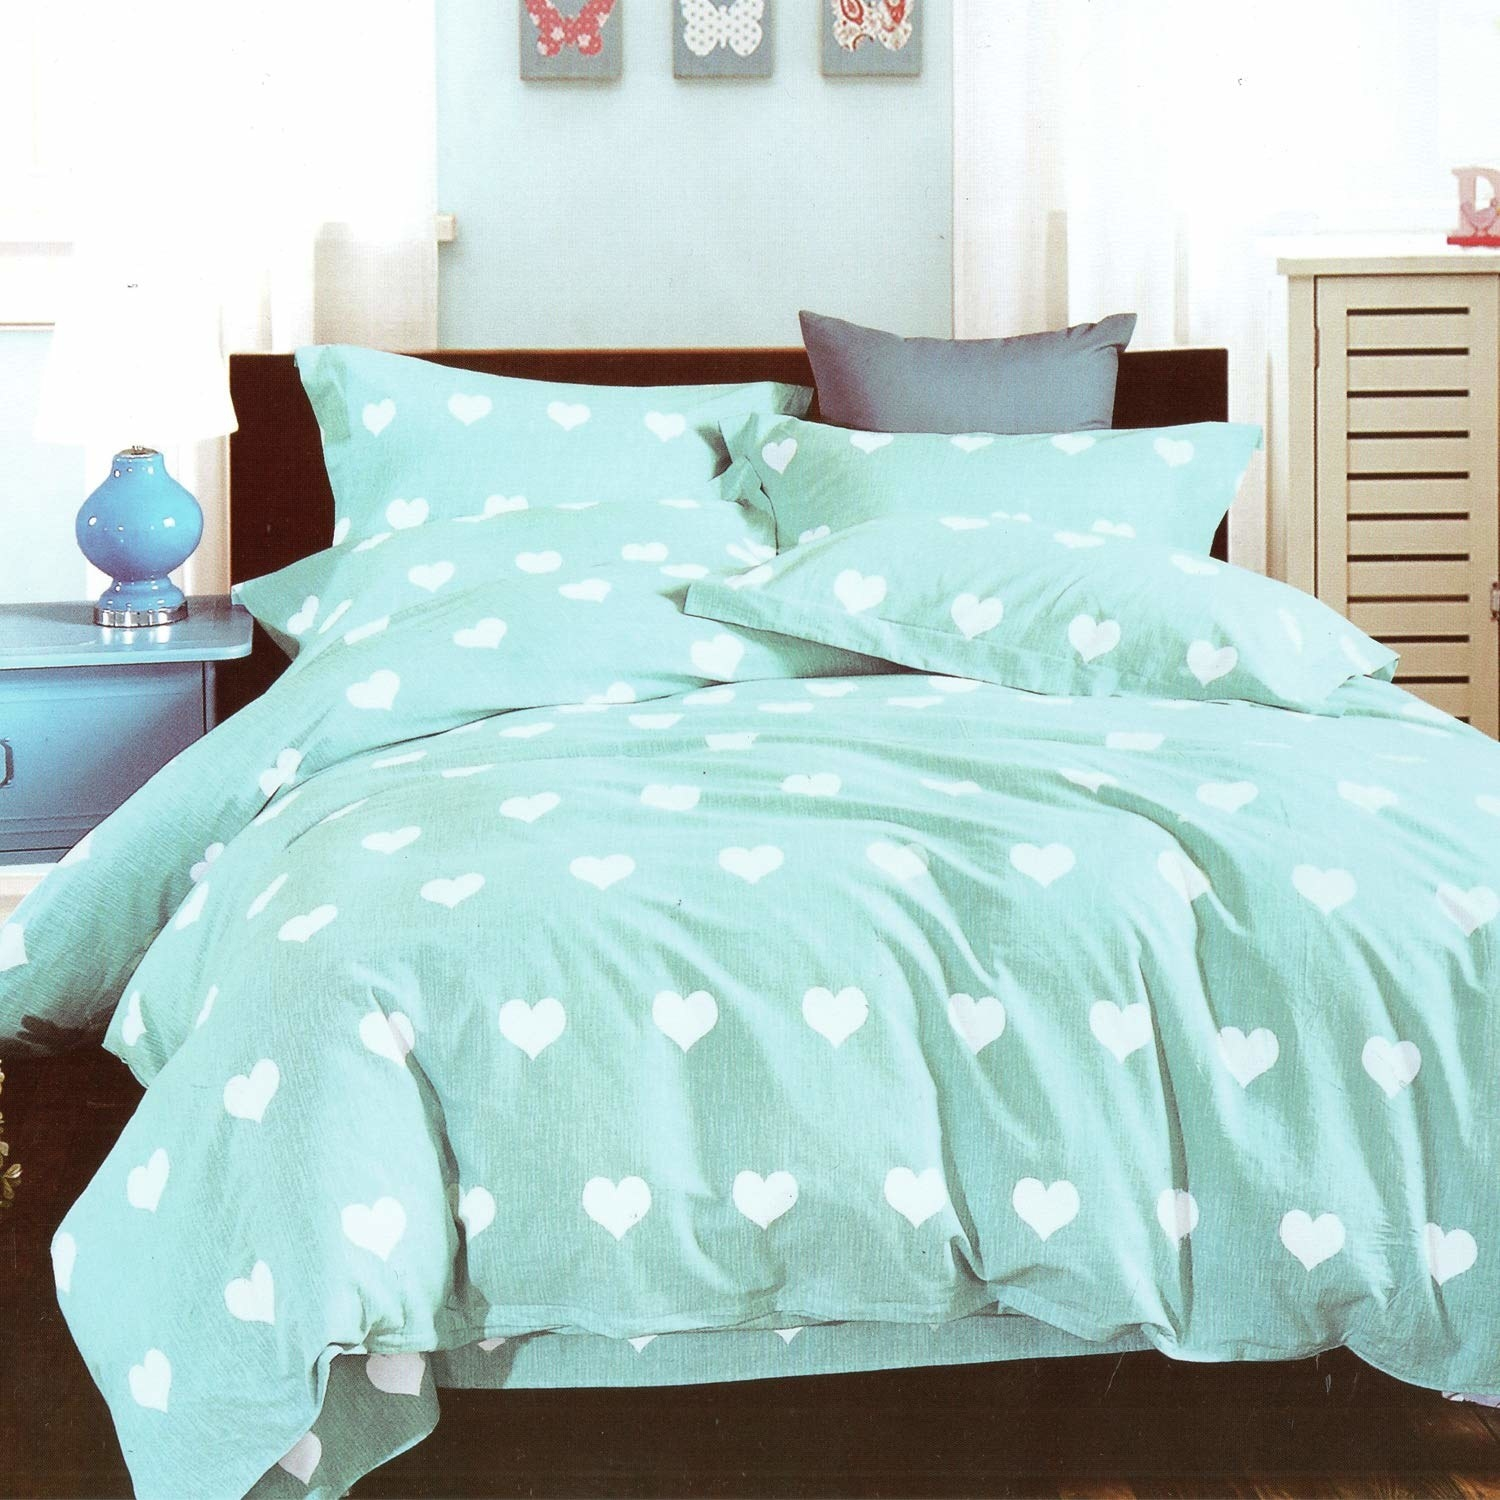 A bedsheet with heart prints